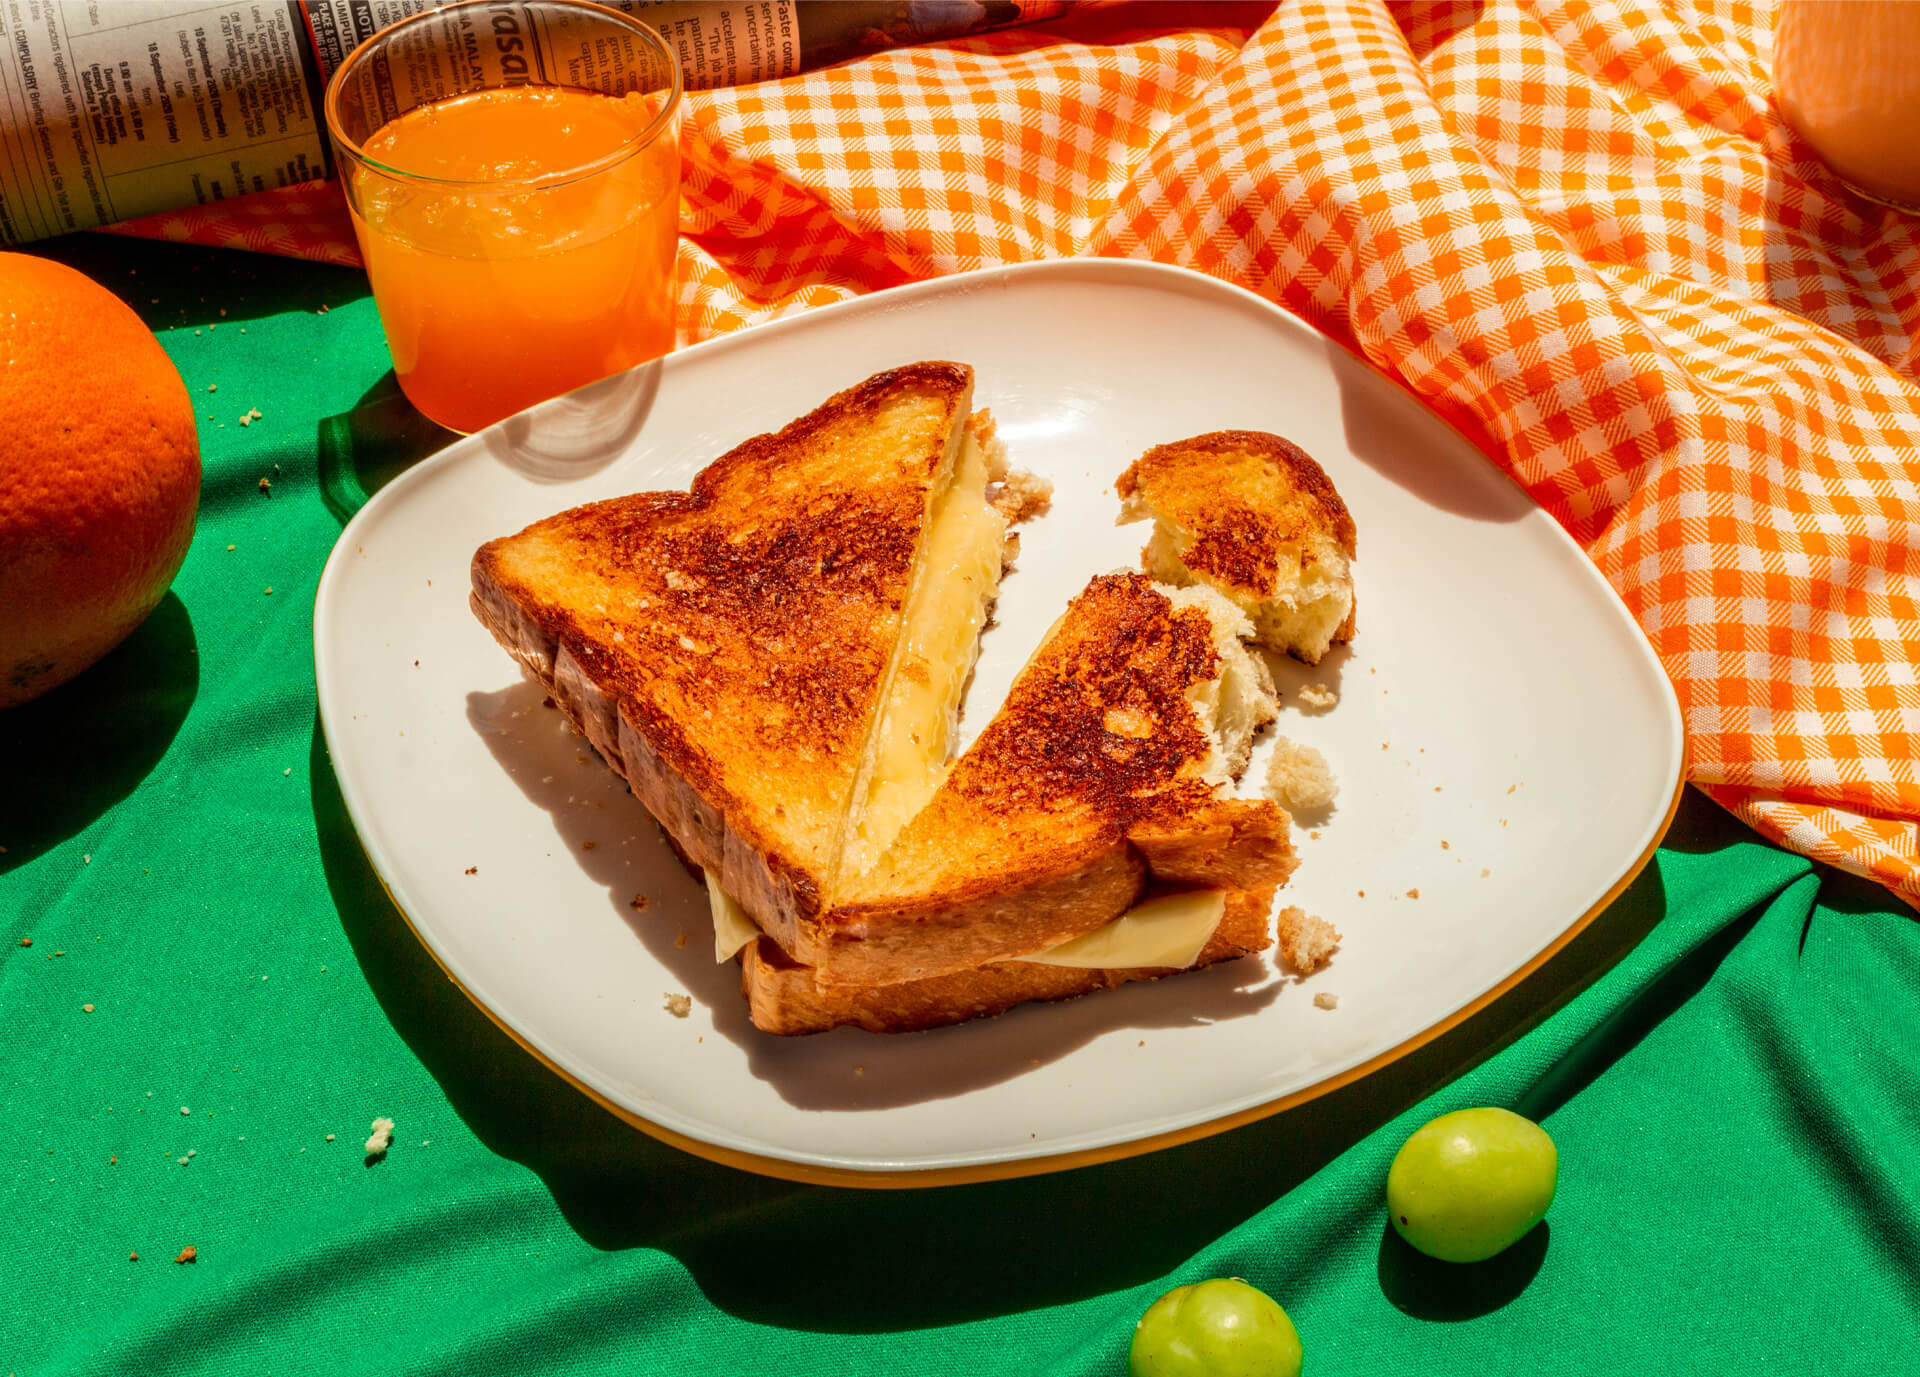 Grilled Cheese food photograph